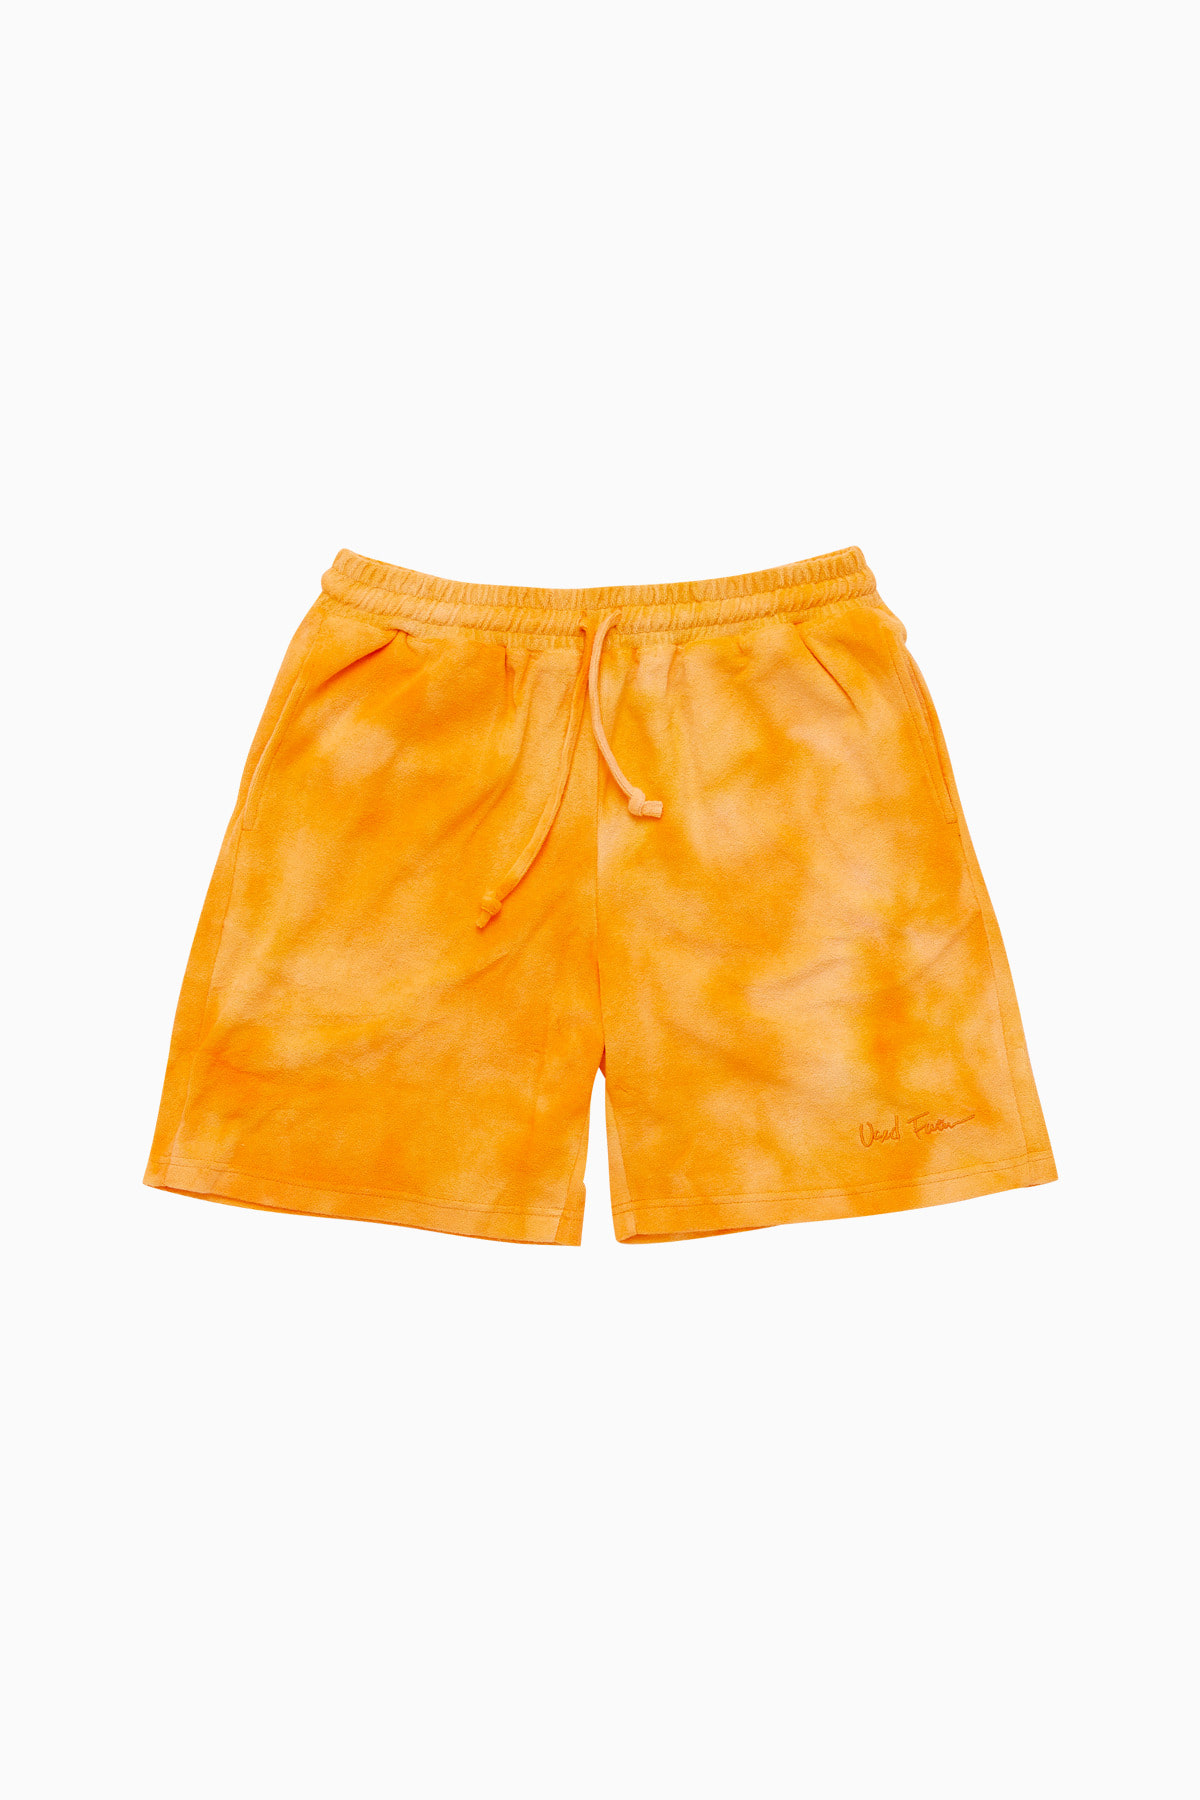 JUICY SHORTS_ORANGE